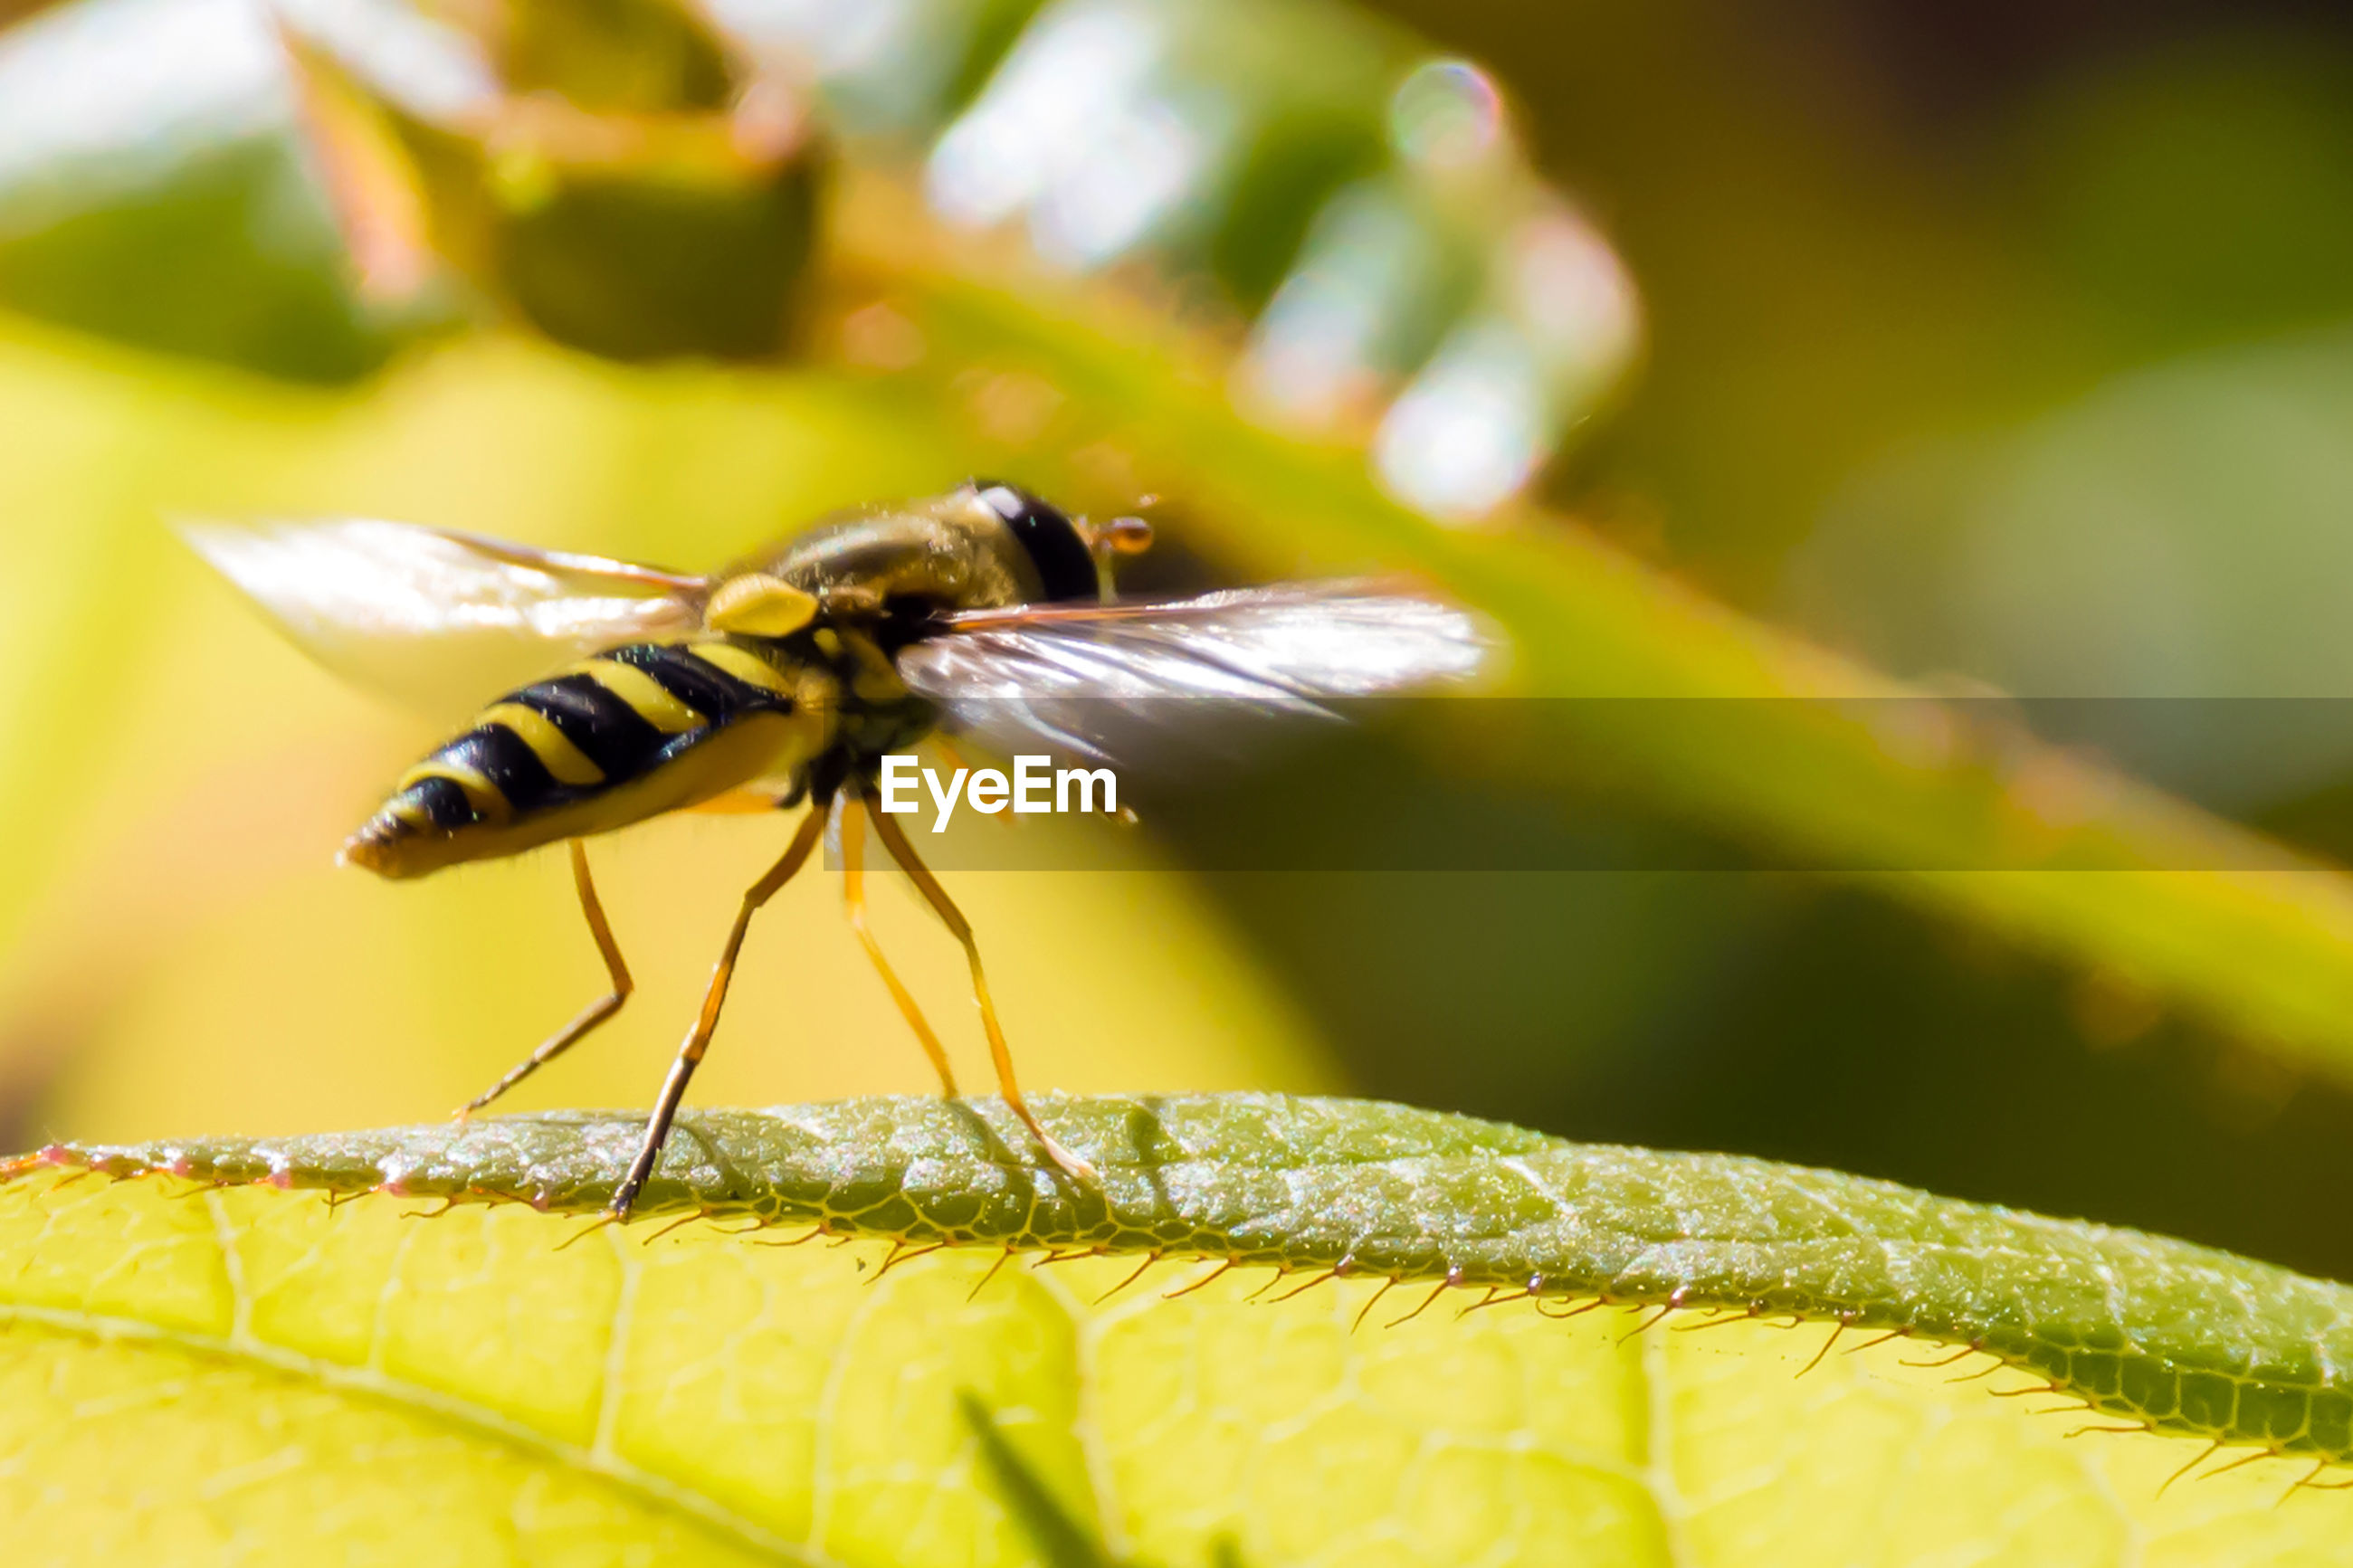 insect, animal themes, one animal, animals in the wild, nature, close-up, day, outdoors, fragility, no people, leaf, animal wildlife, yellow, flower, plant, sunlight, beauty in nature, growth, freshness, bee, flower head